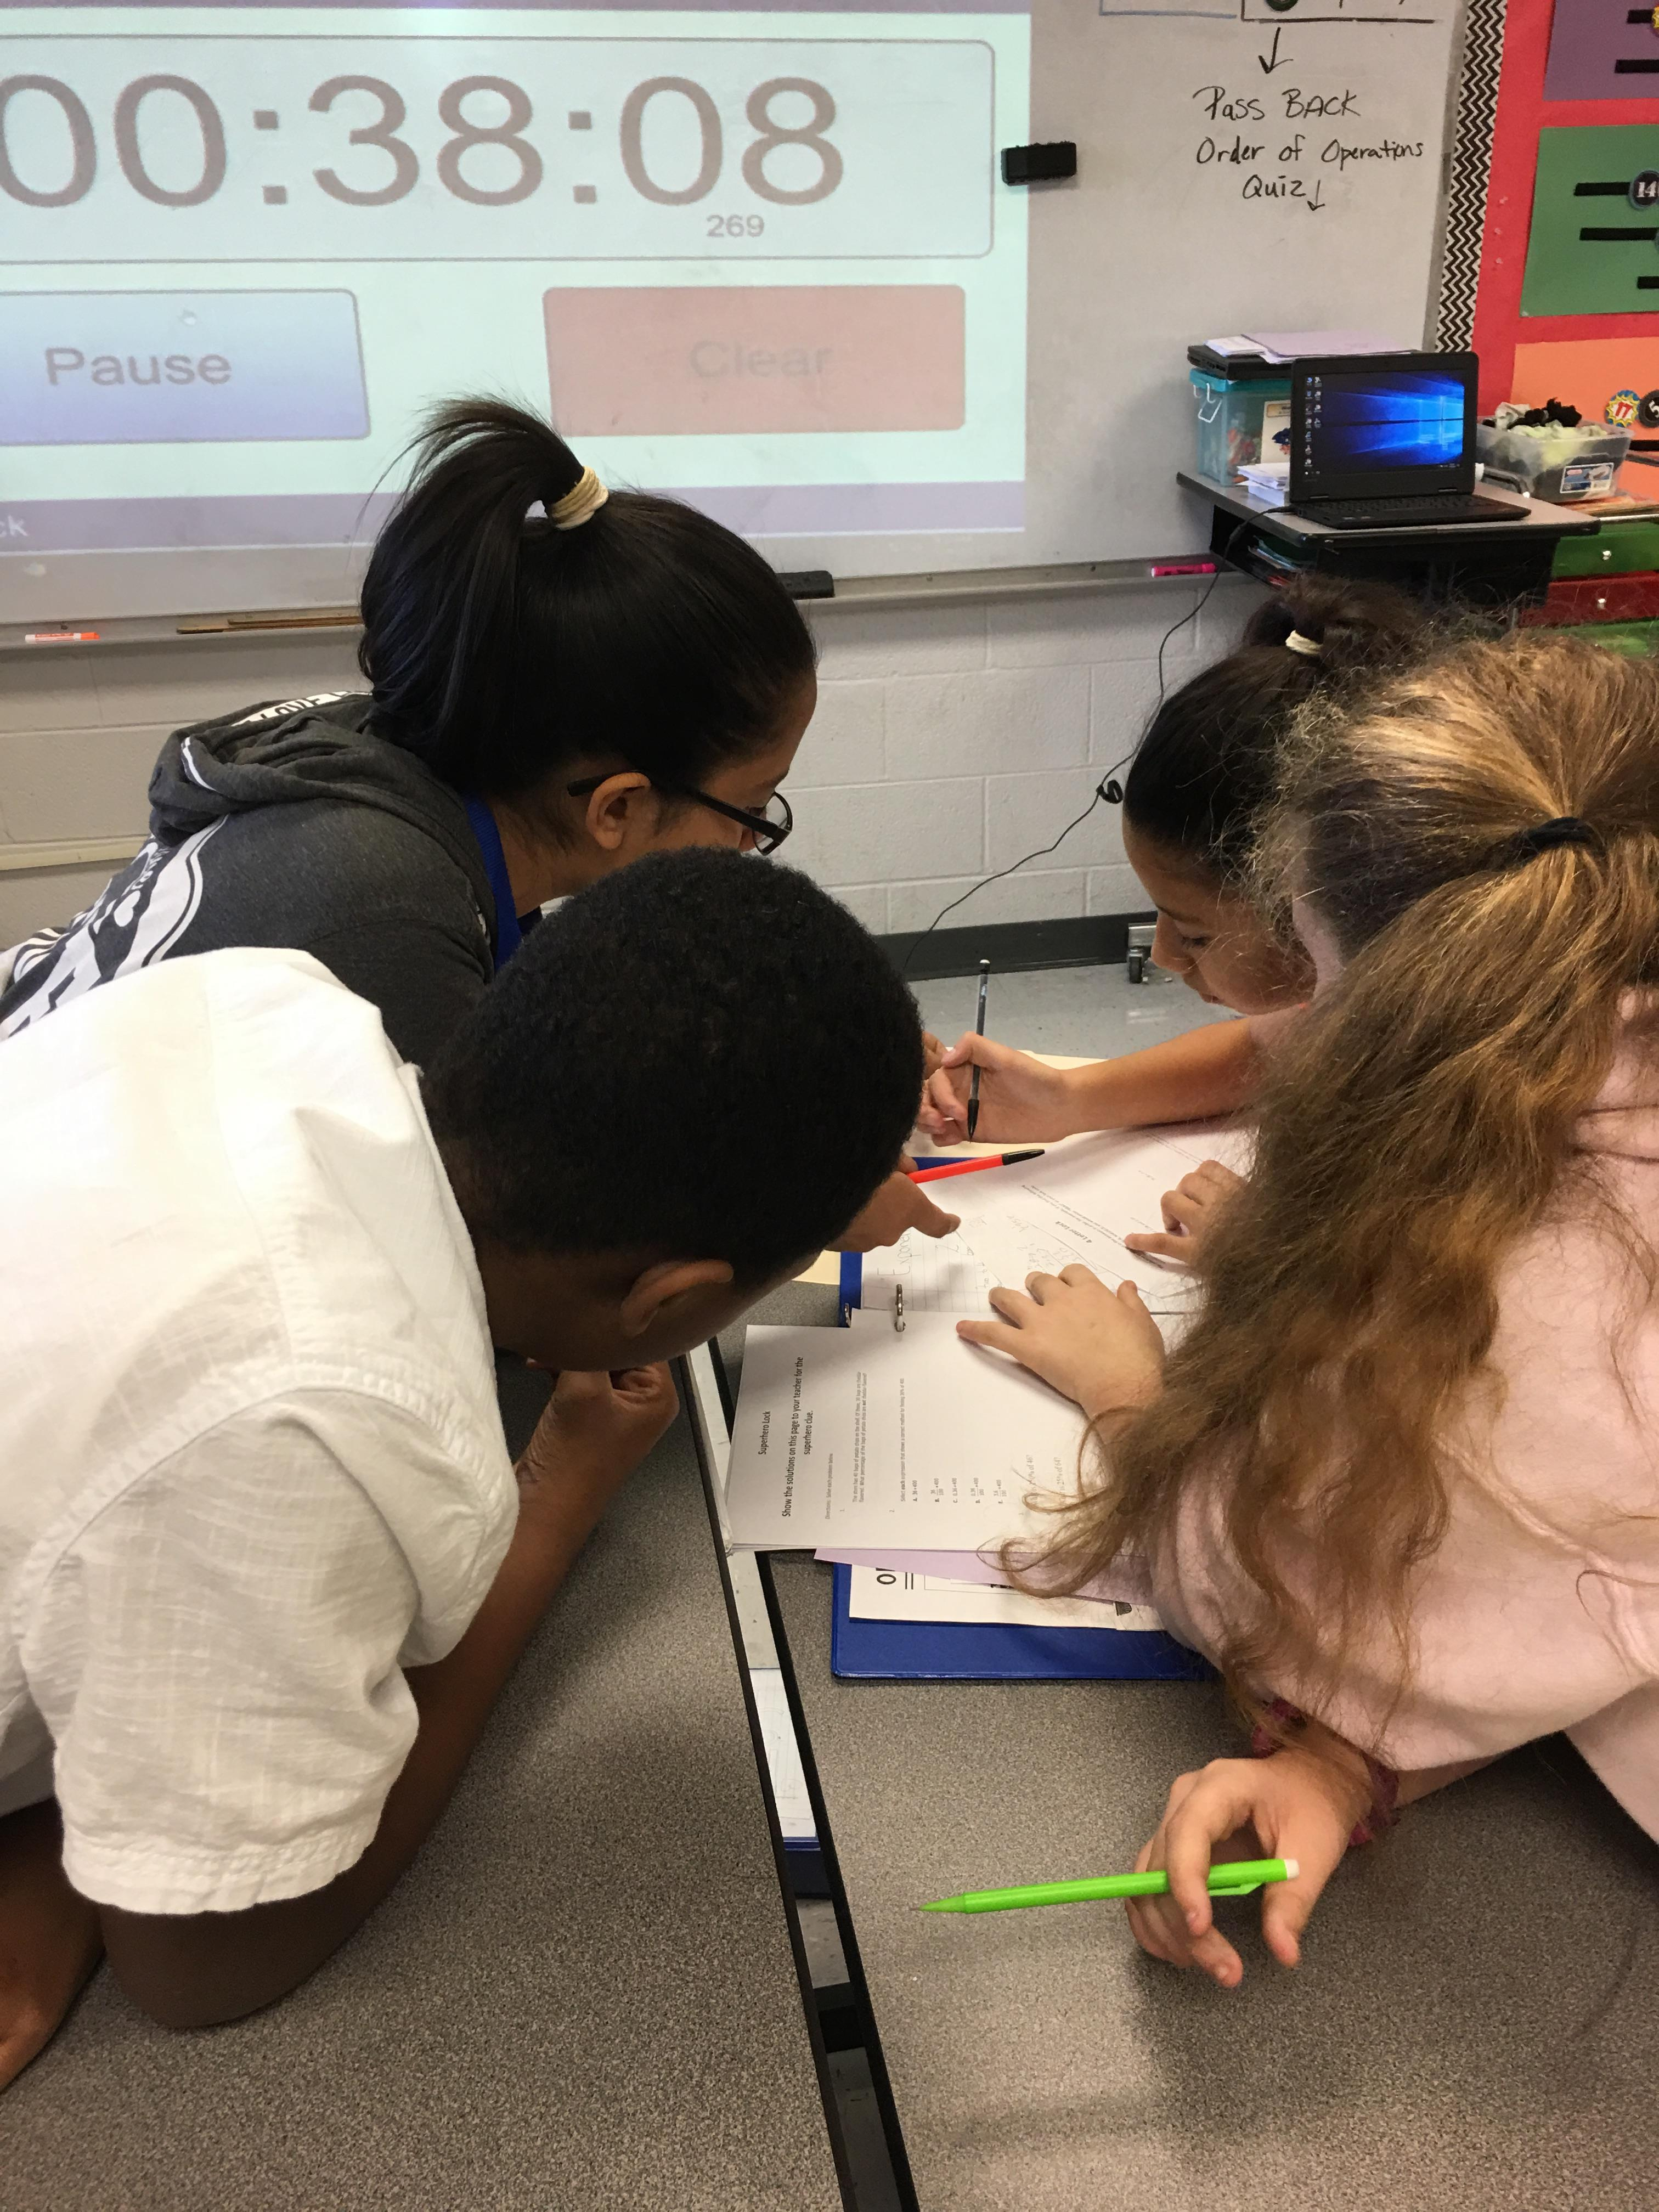 6th Grade Math reviews by playing Escape Game